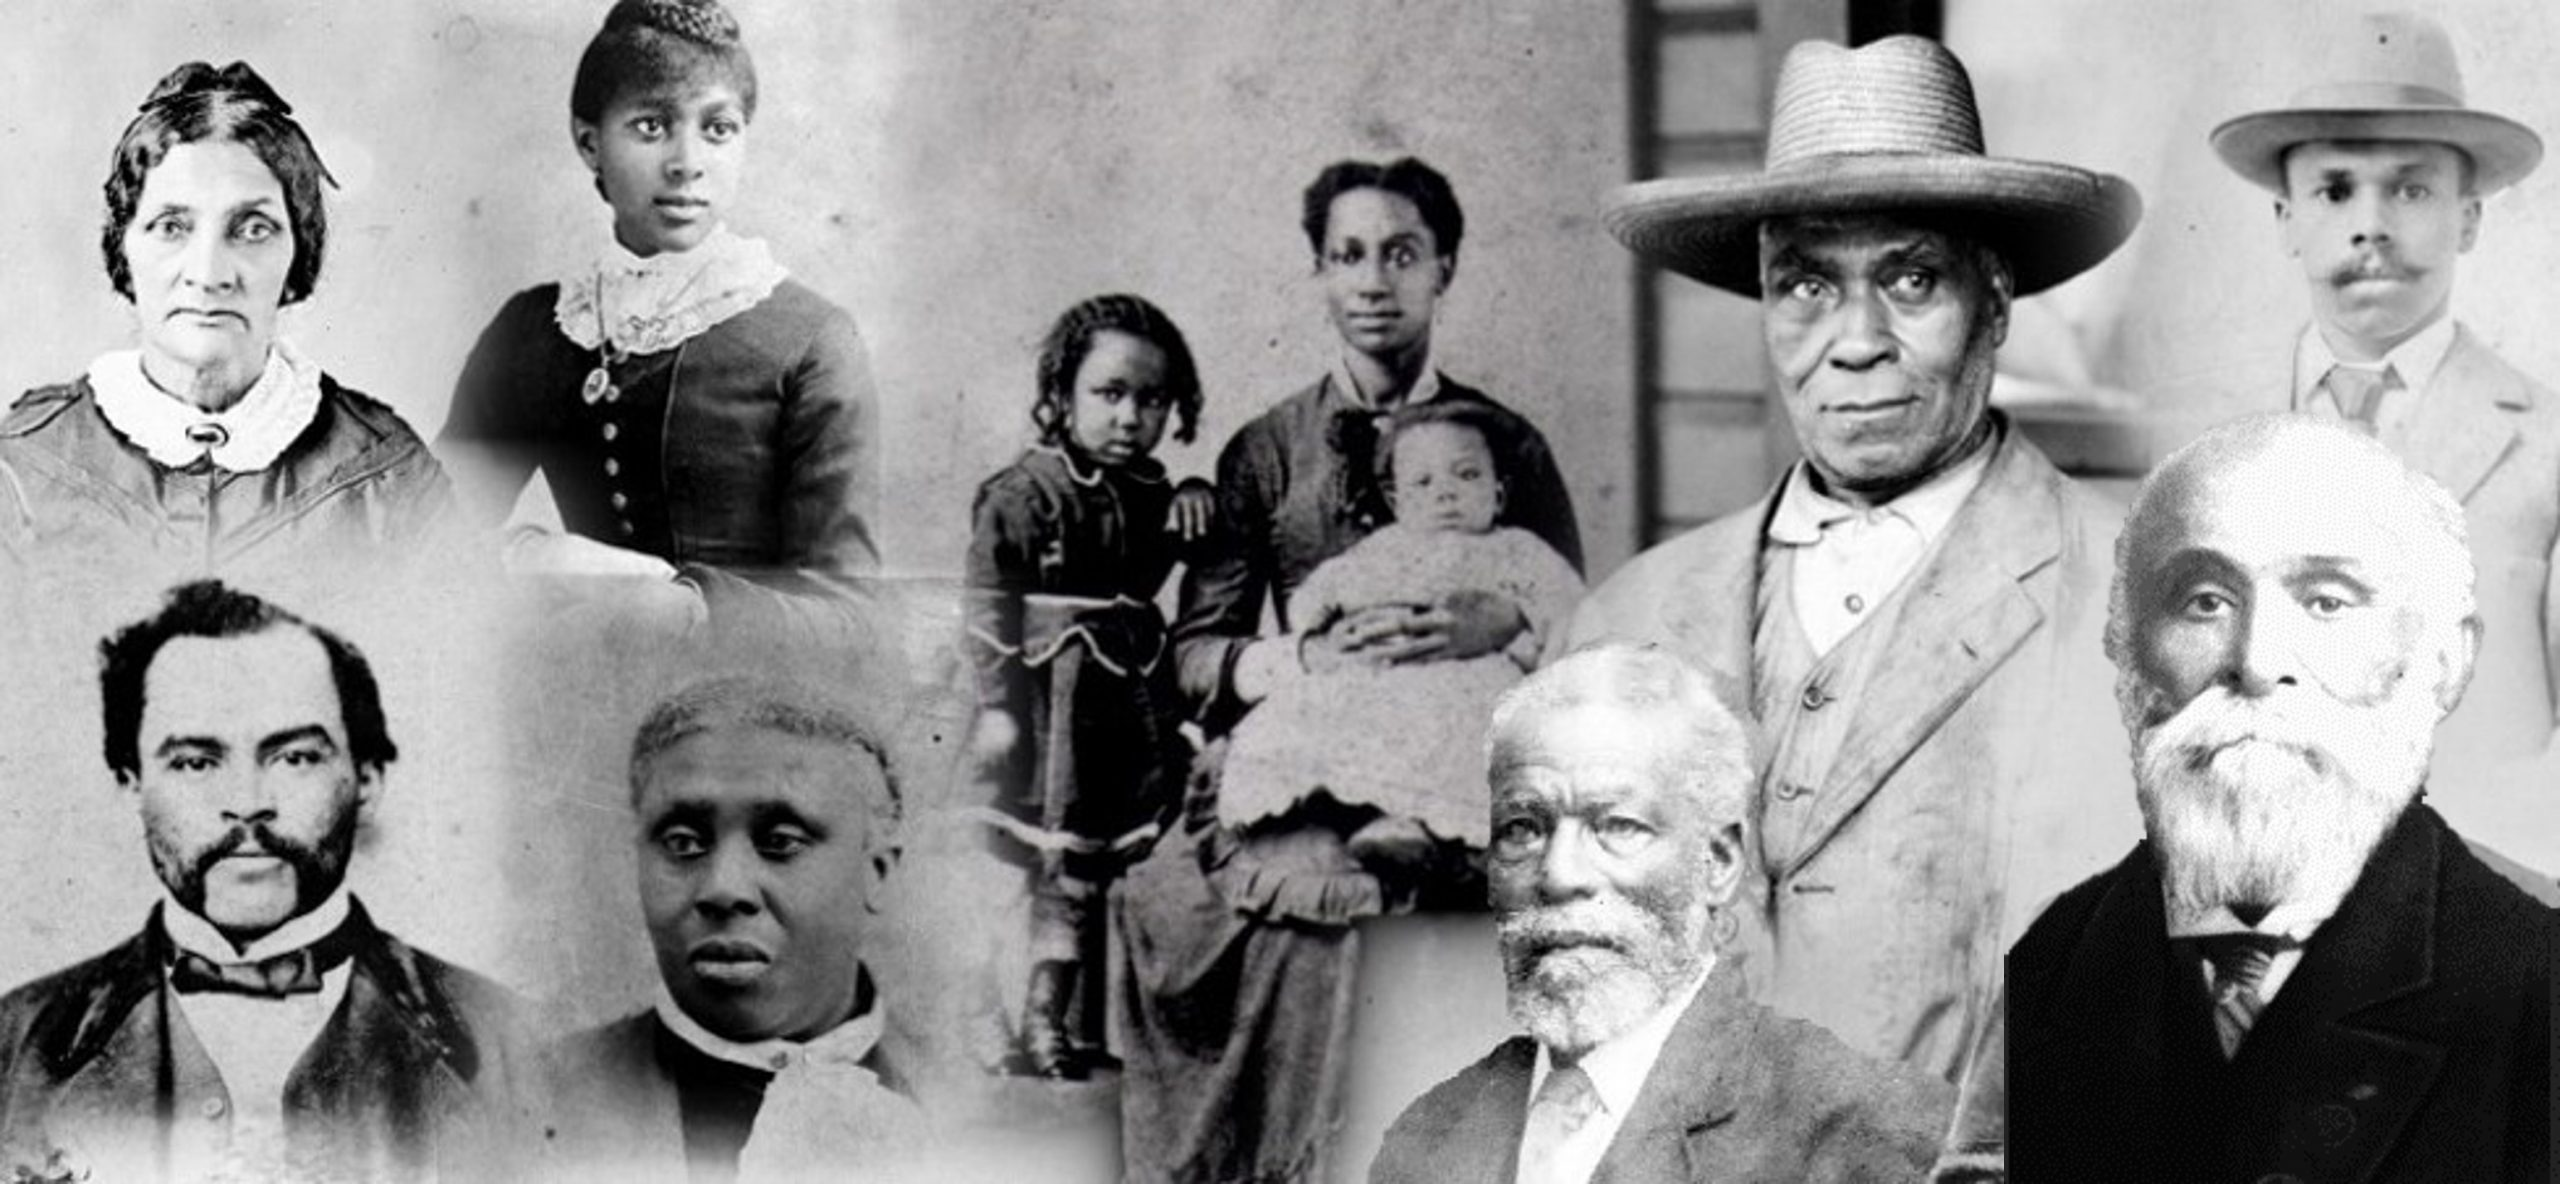 Collage of faces of the Black men, women and children of varying ages who came to BC in 1858